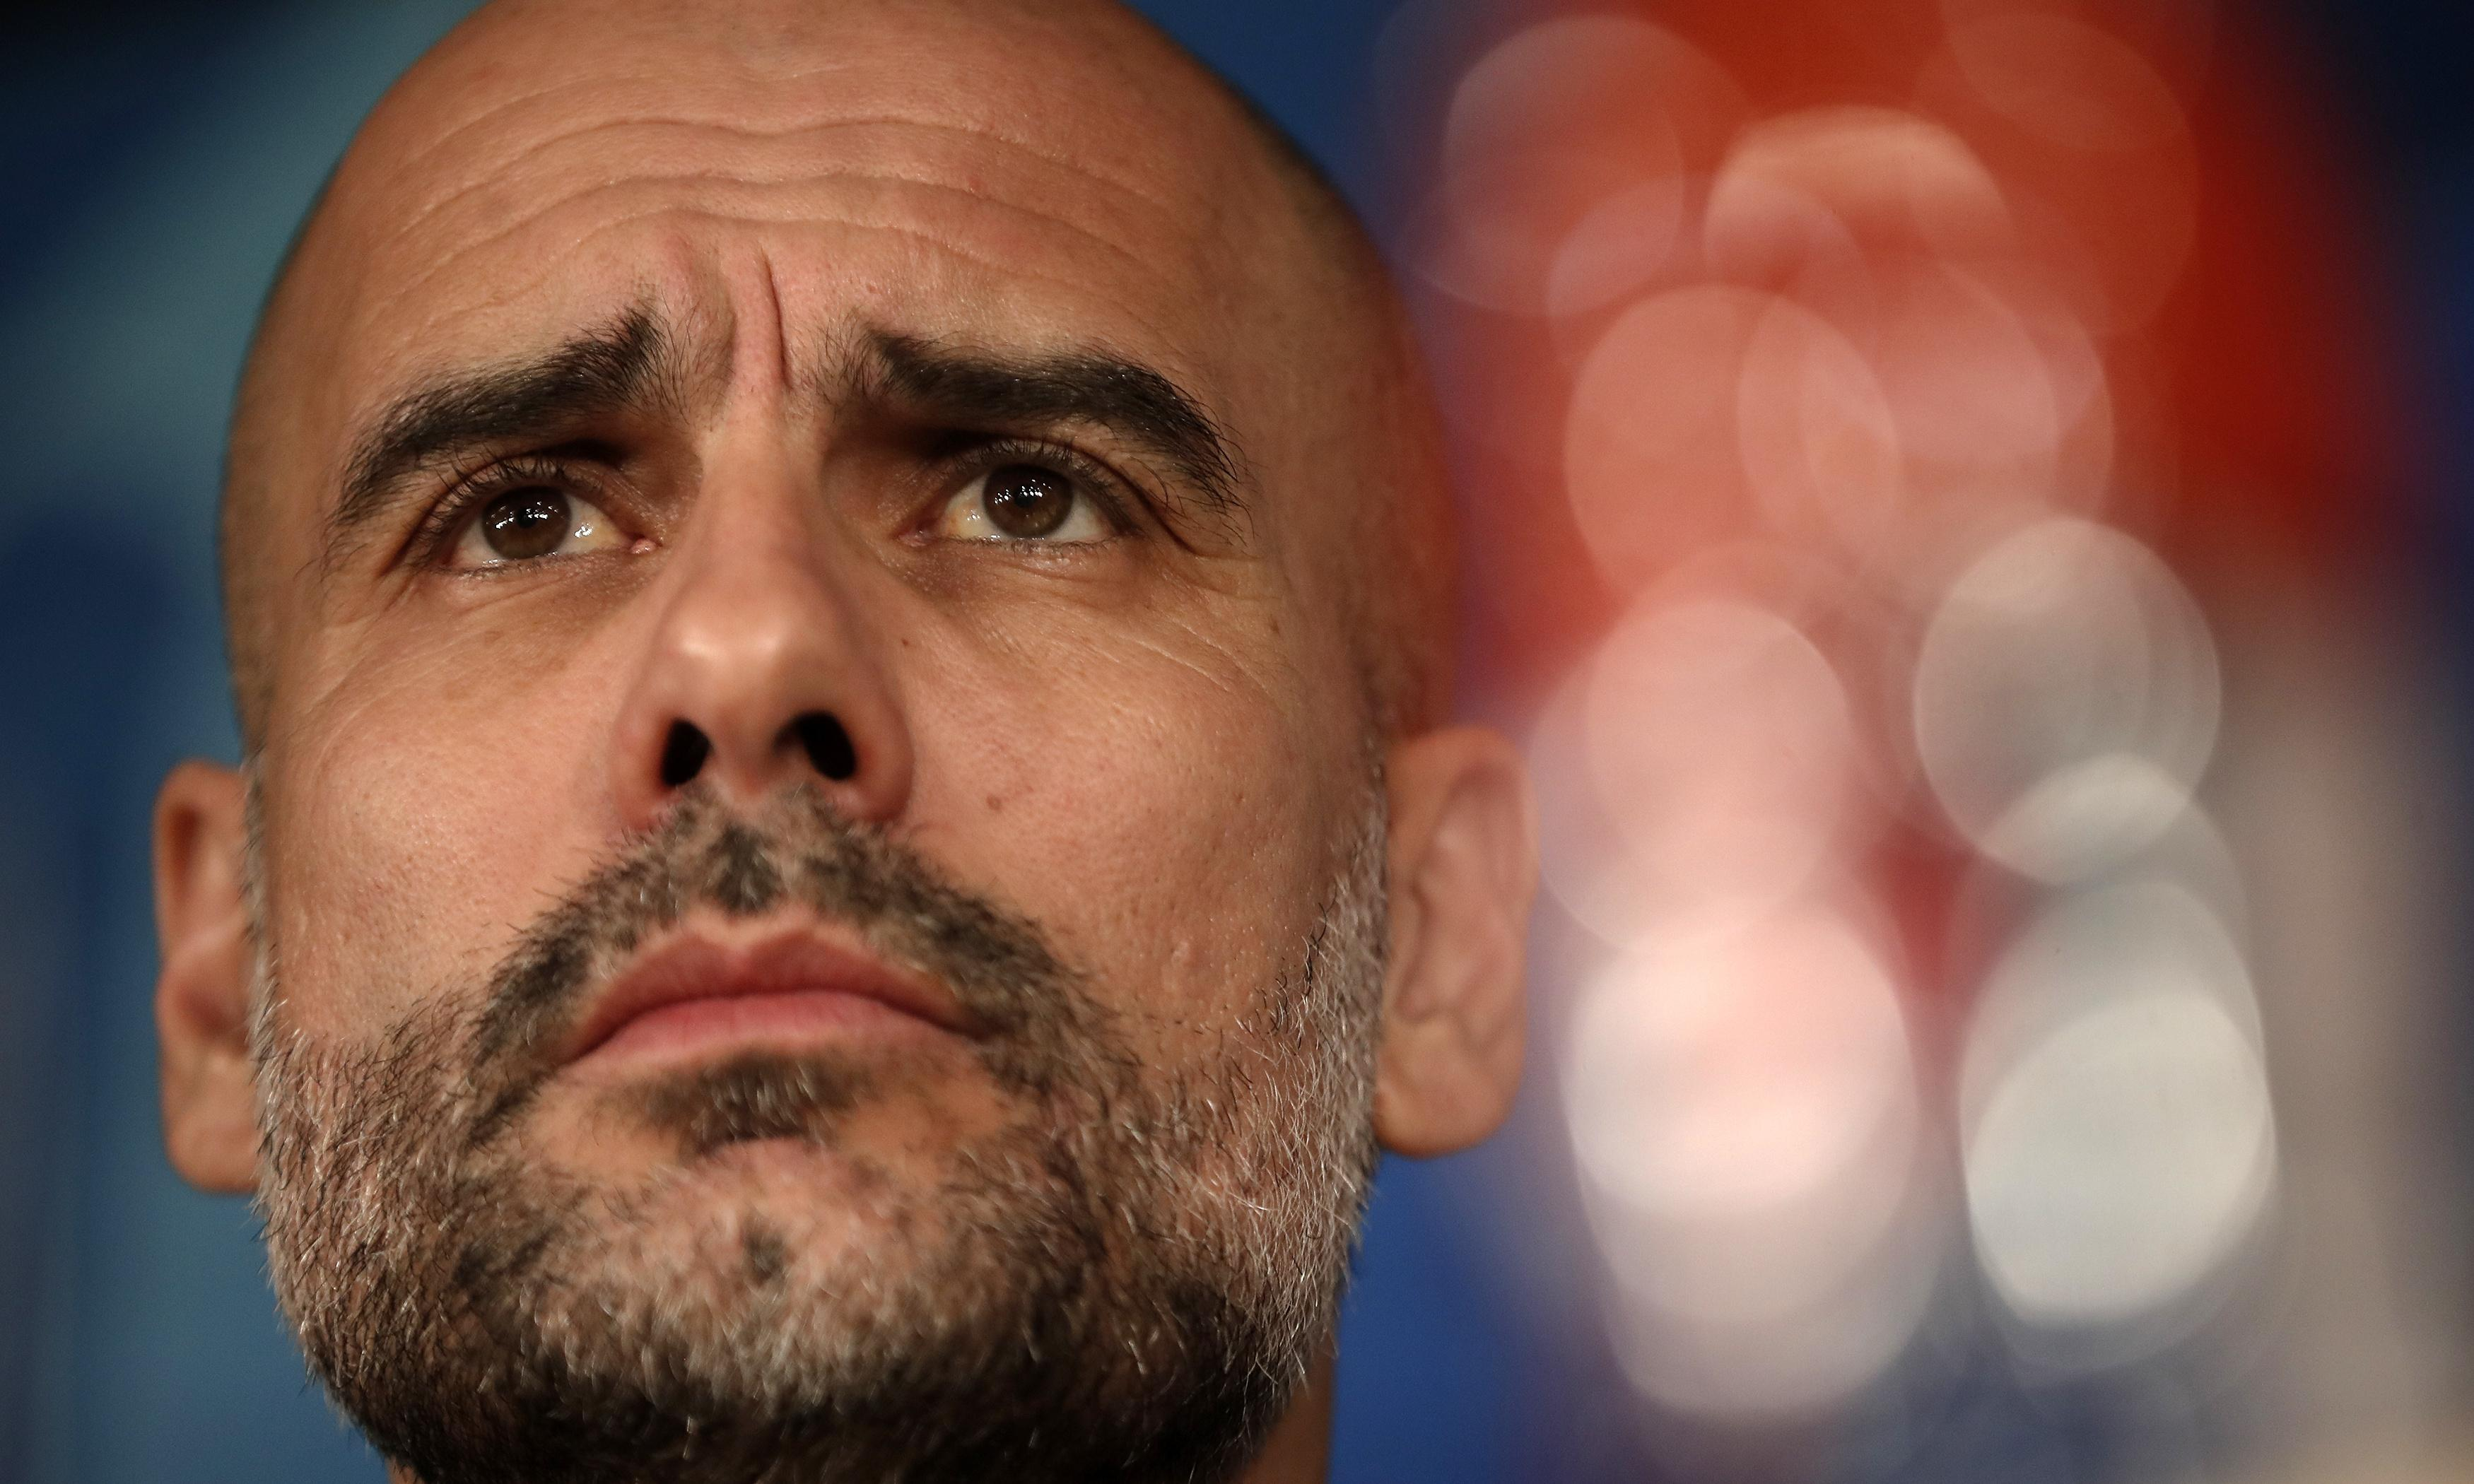 Manchester City's Pep Guardiola hopes Real Madrid tie is 'fair for both sides'